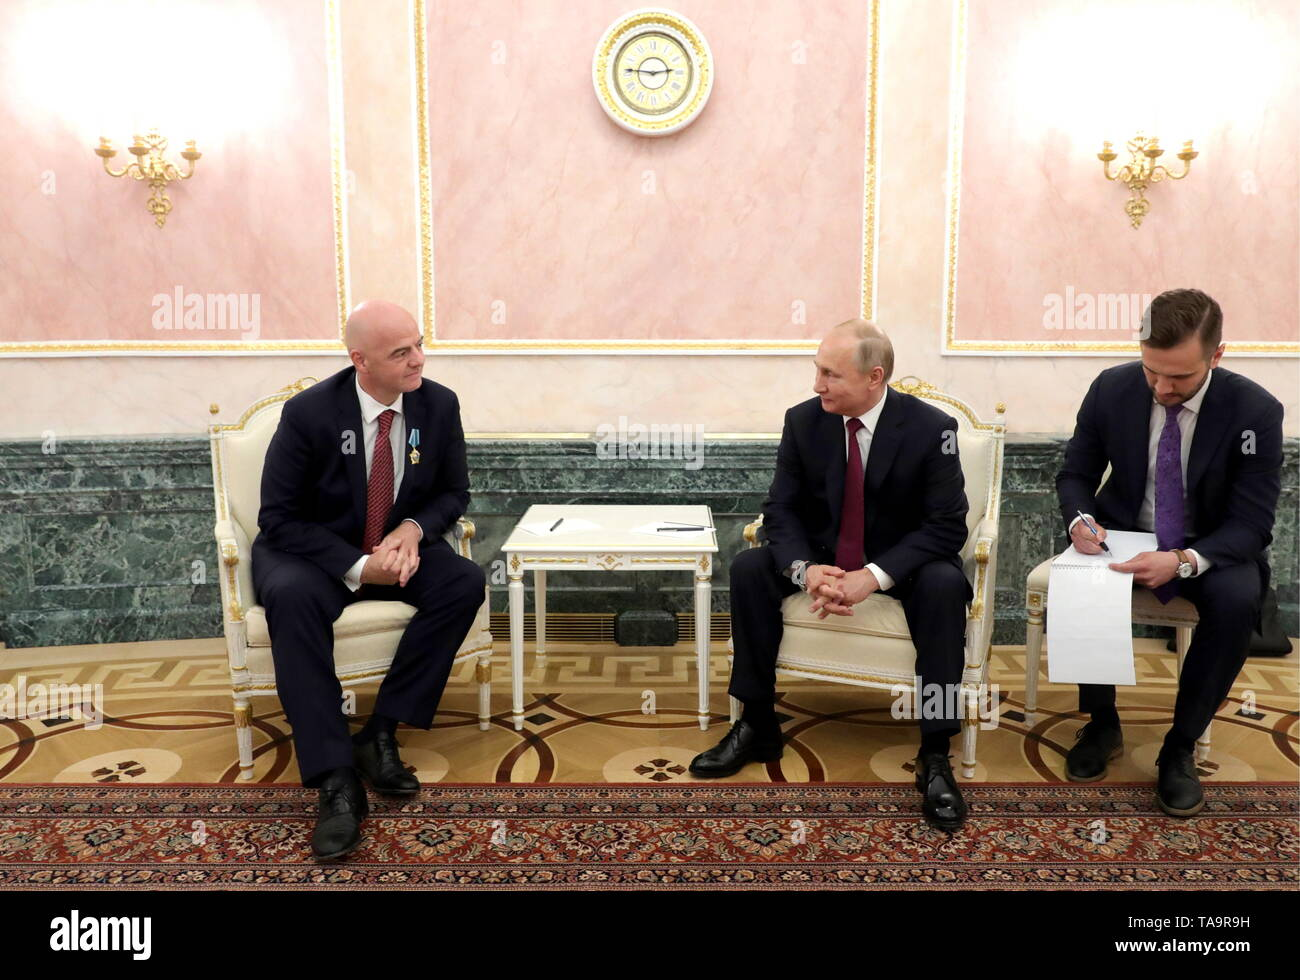 Moscow, Russia. 23rd May, 2019. MOSCOW, RUSSIA - MAY 23, 2019: FIFA President Gianni Infantino (L) and Russia's President Vladimir Putin talk during a meeting at the Moscow Kremlin. Mikhail Klimentyev/Russian Presidential Press and Information Office/TASS Credit: ITAR-TASS News Agency/Alamy Live News - Stock Image